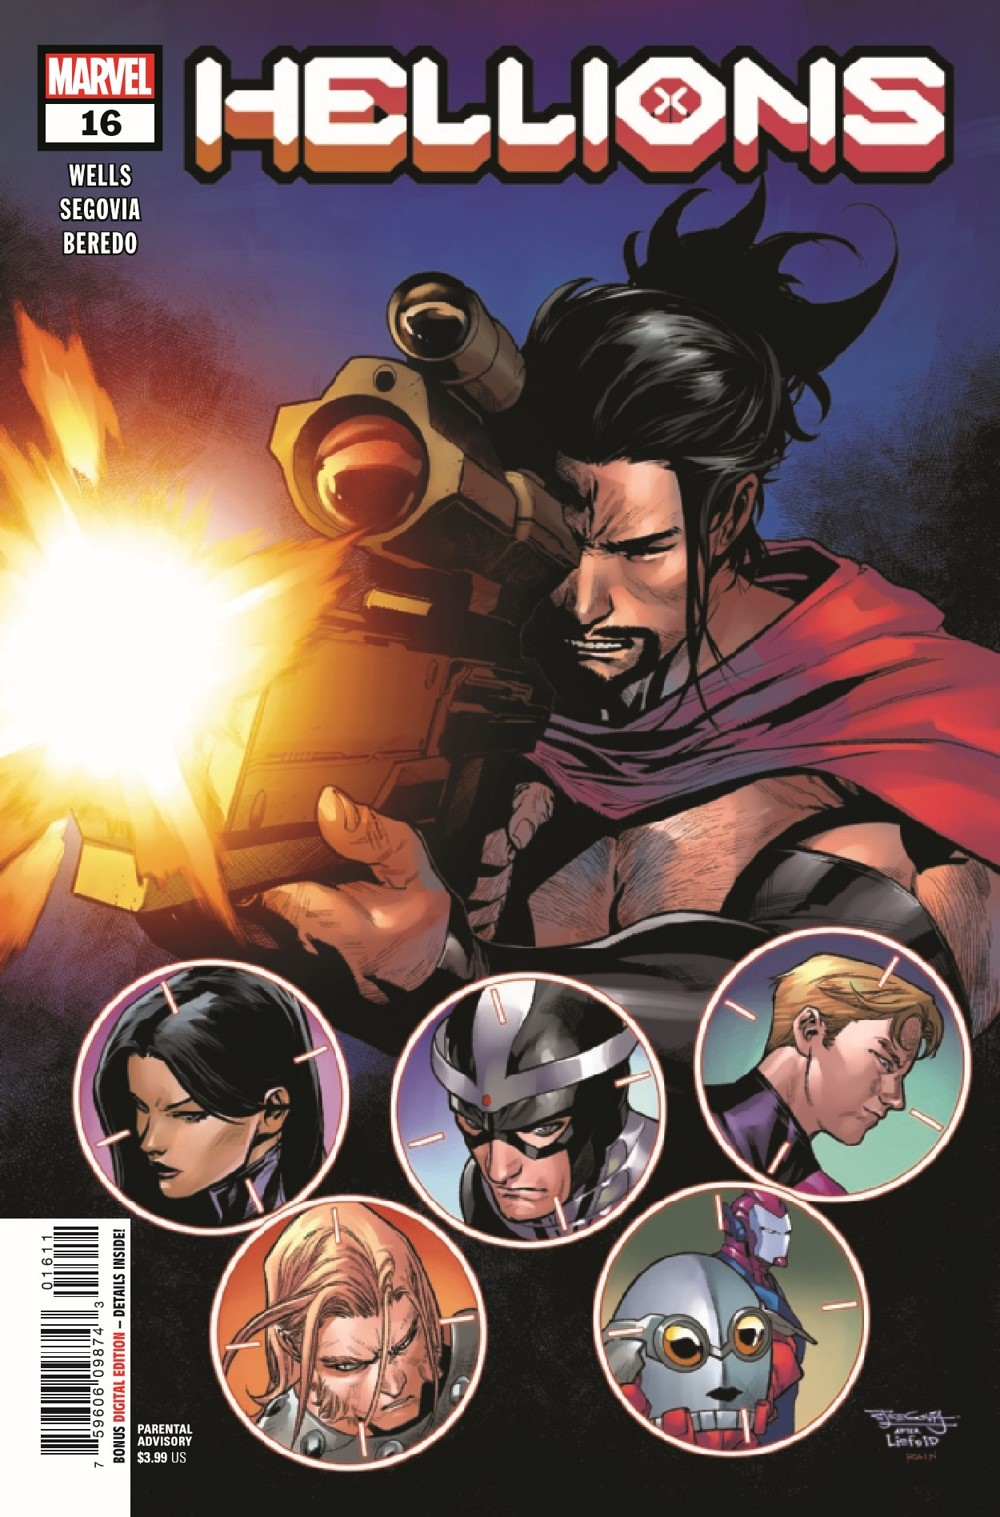 HELLIONS2020016_Preview-1 ComicList Previews: HELLIONS #16